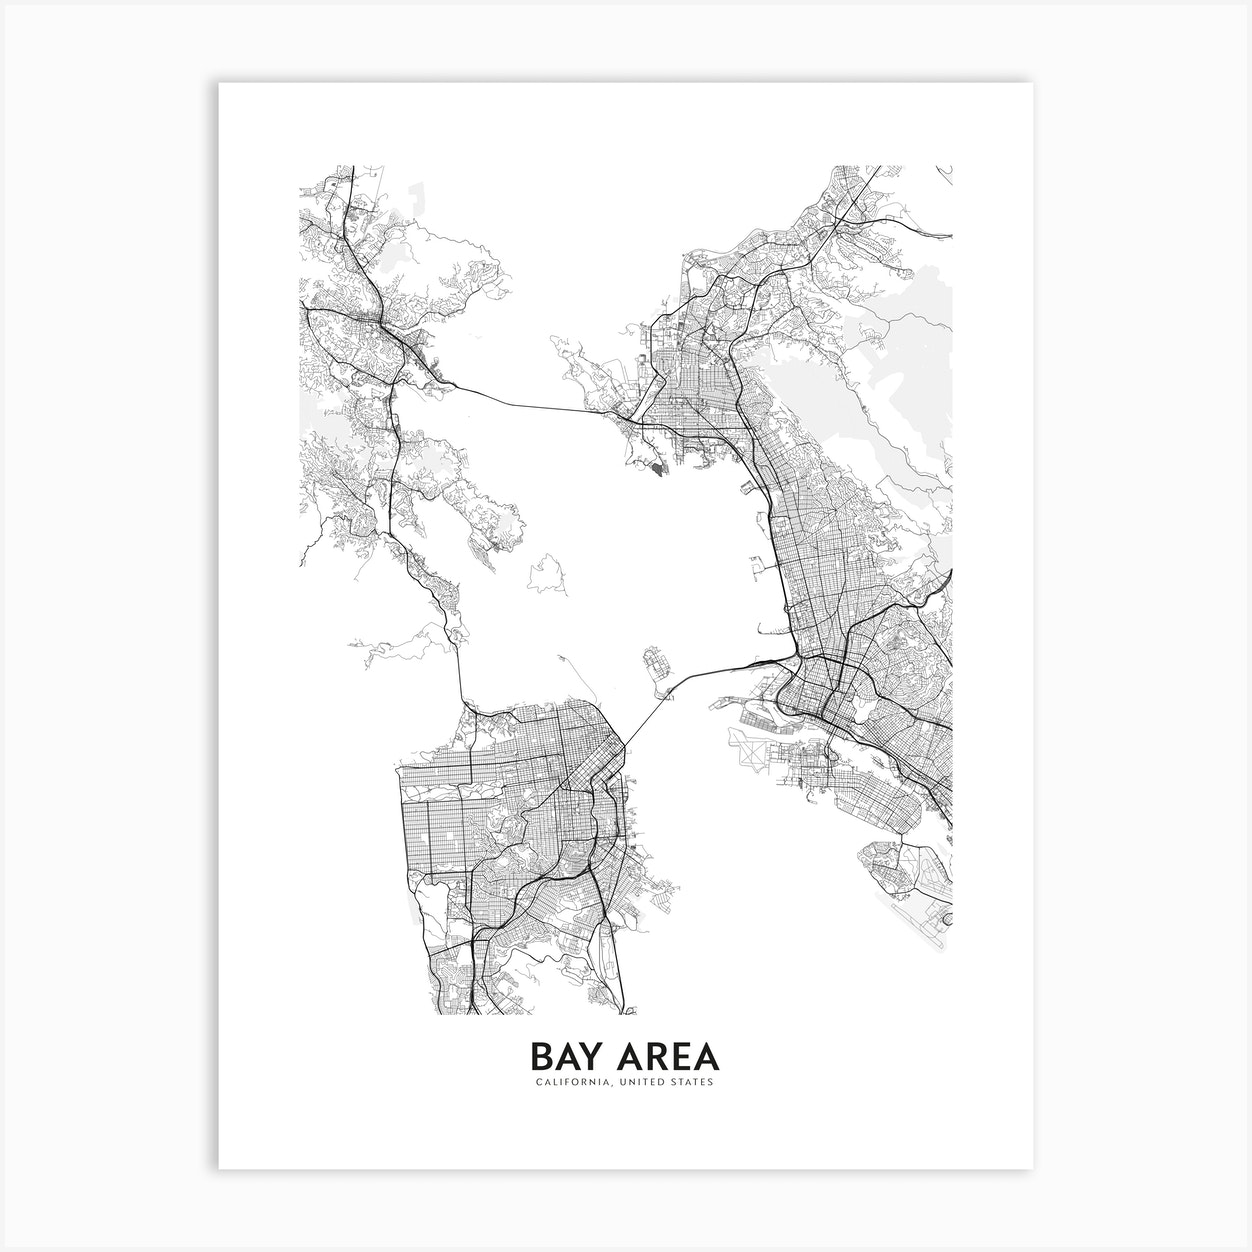 Bay Area Art Print By Atlas Prints Fy Administrative map of the california region san francisco bay area. bay area art print